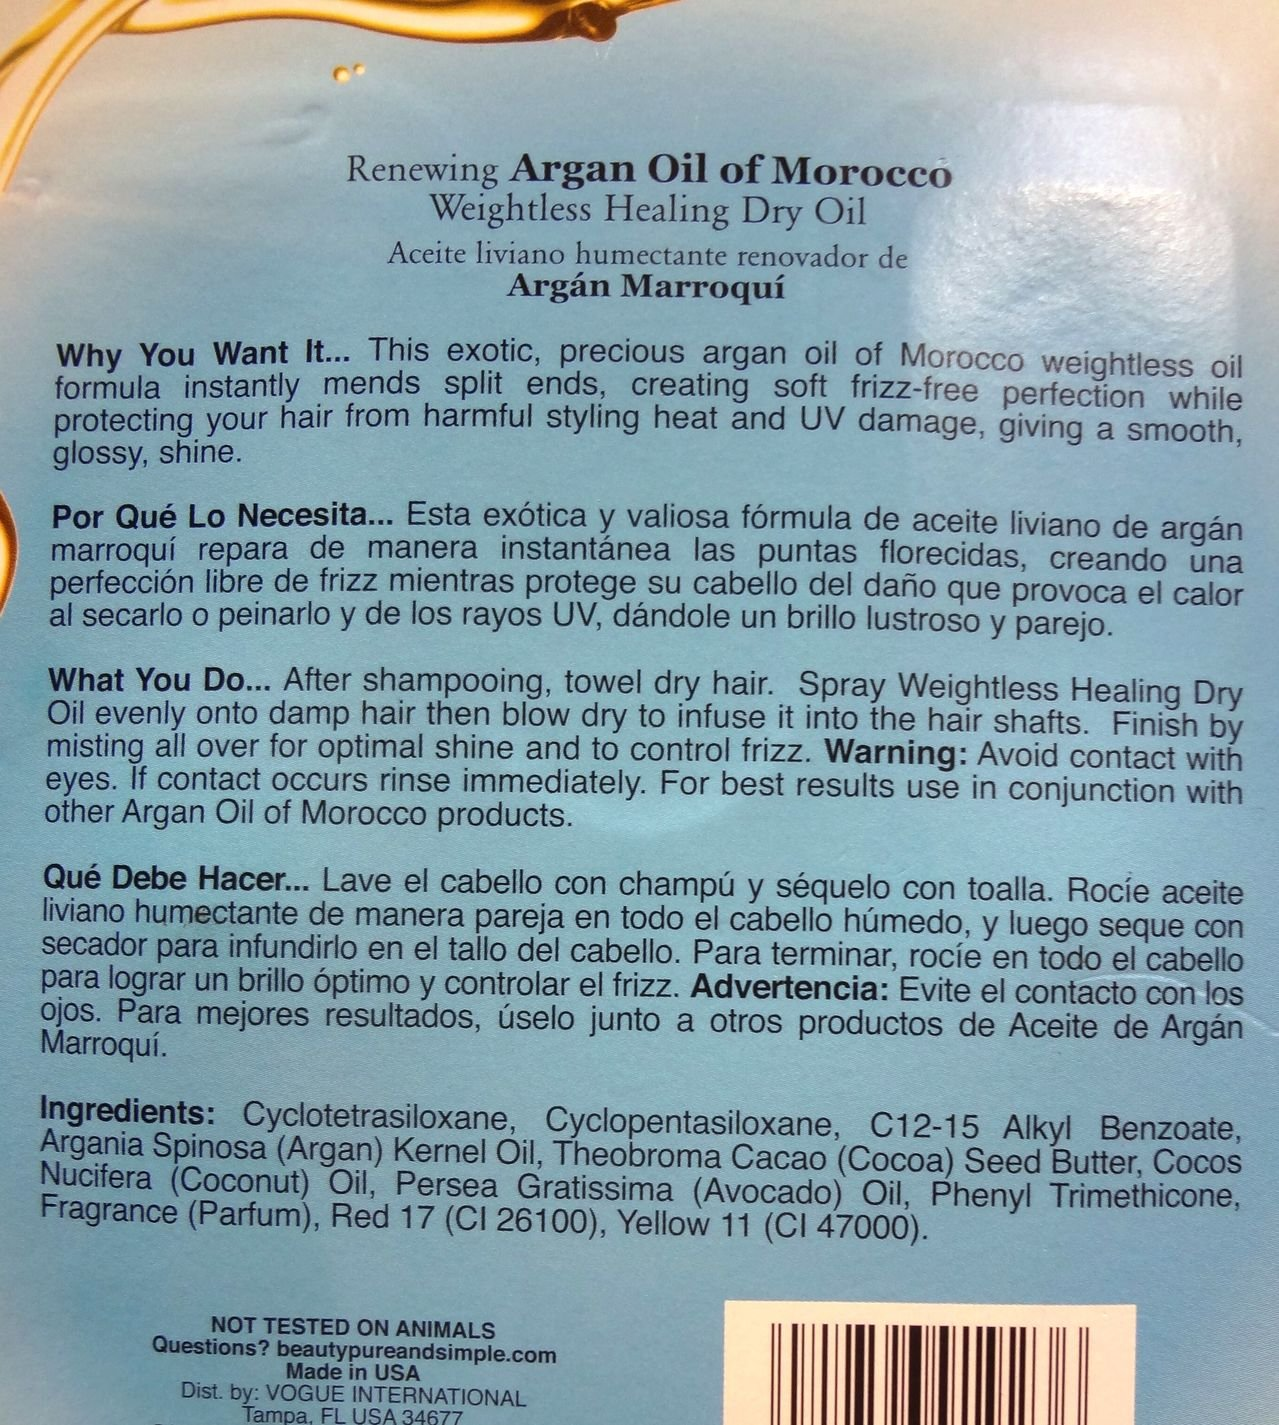 Amazon.com: Organix 2-4fl OZ renewing argan oil of morocco, 8FL OZ: Health & Personal Care